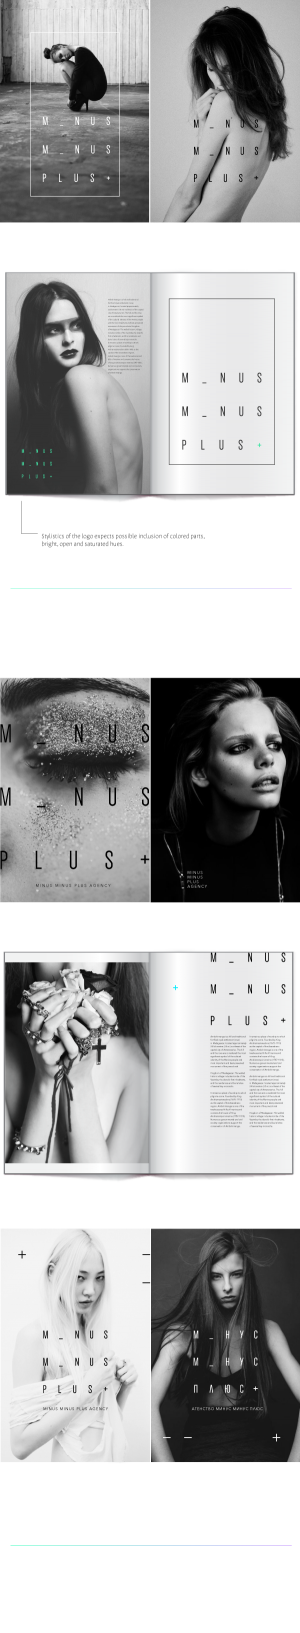 Minus Minus Plus. Photo & video Agency